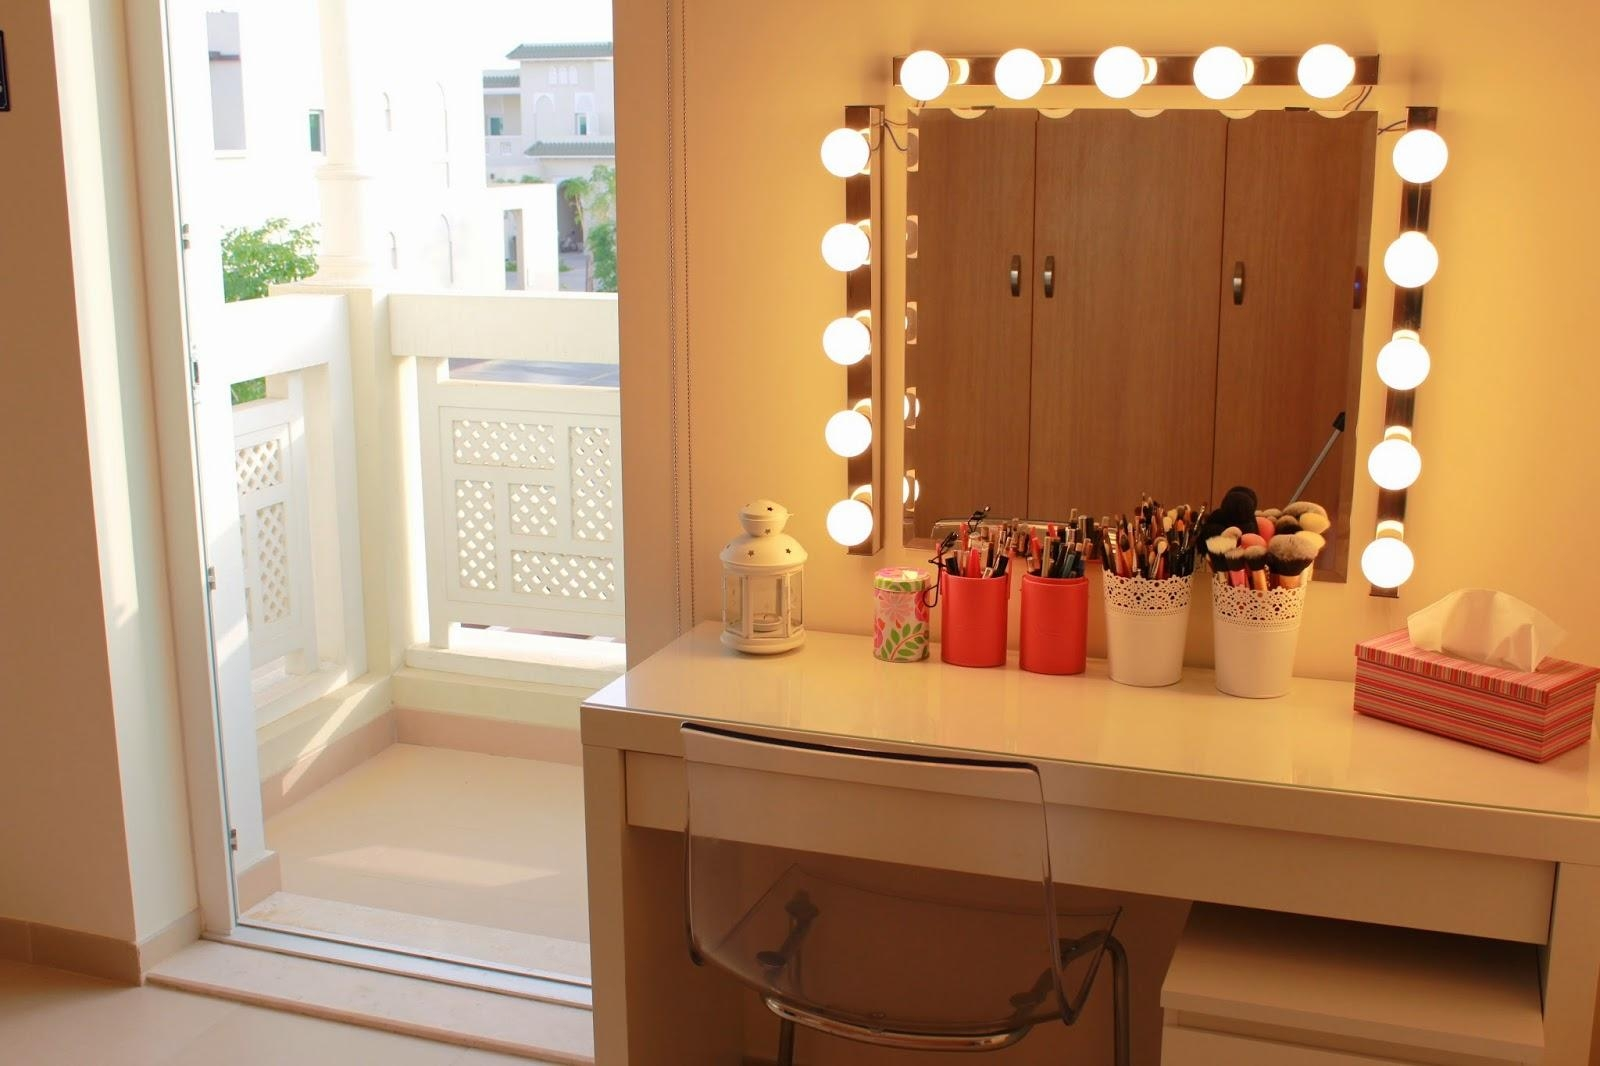 Vanity Dressing Table With Mirror And Lights | Creative Vanity Within Illuminated Dressing Table Mirror (View 18 of 20)